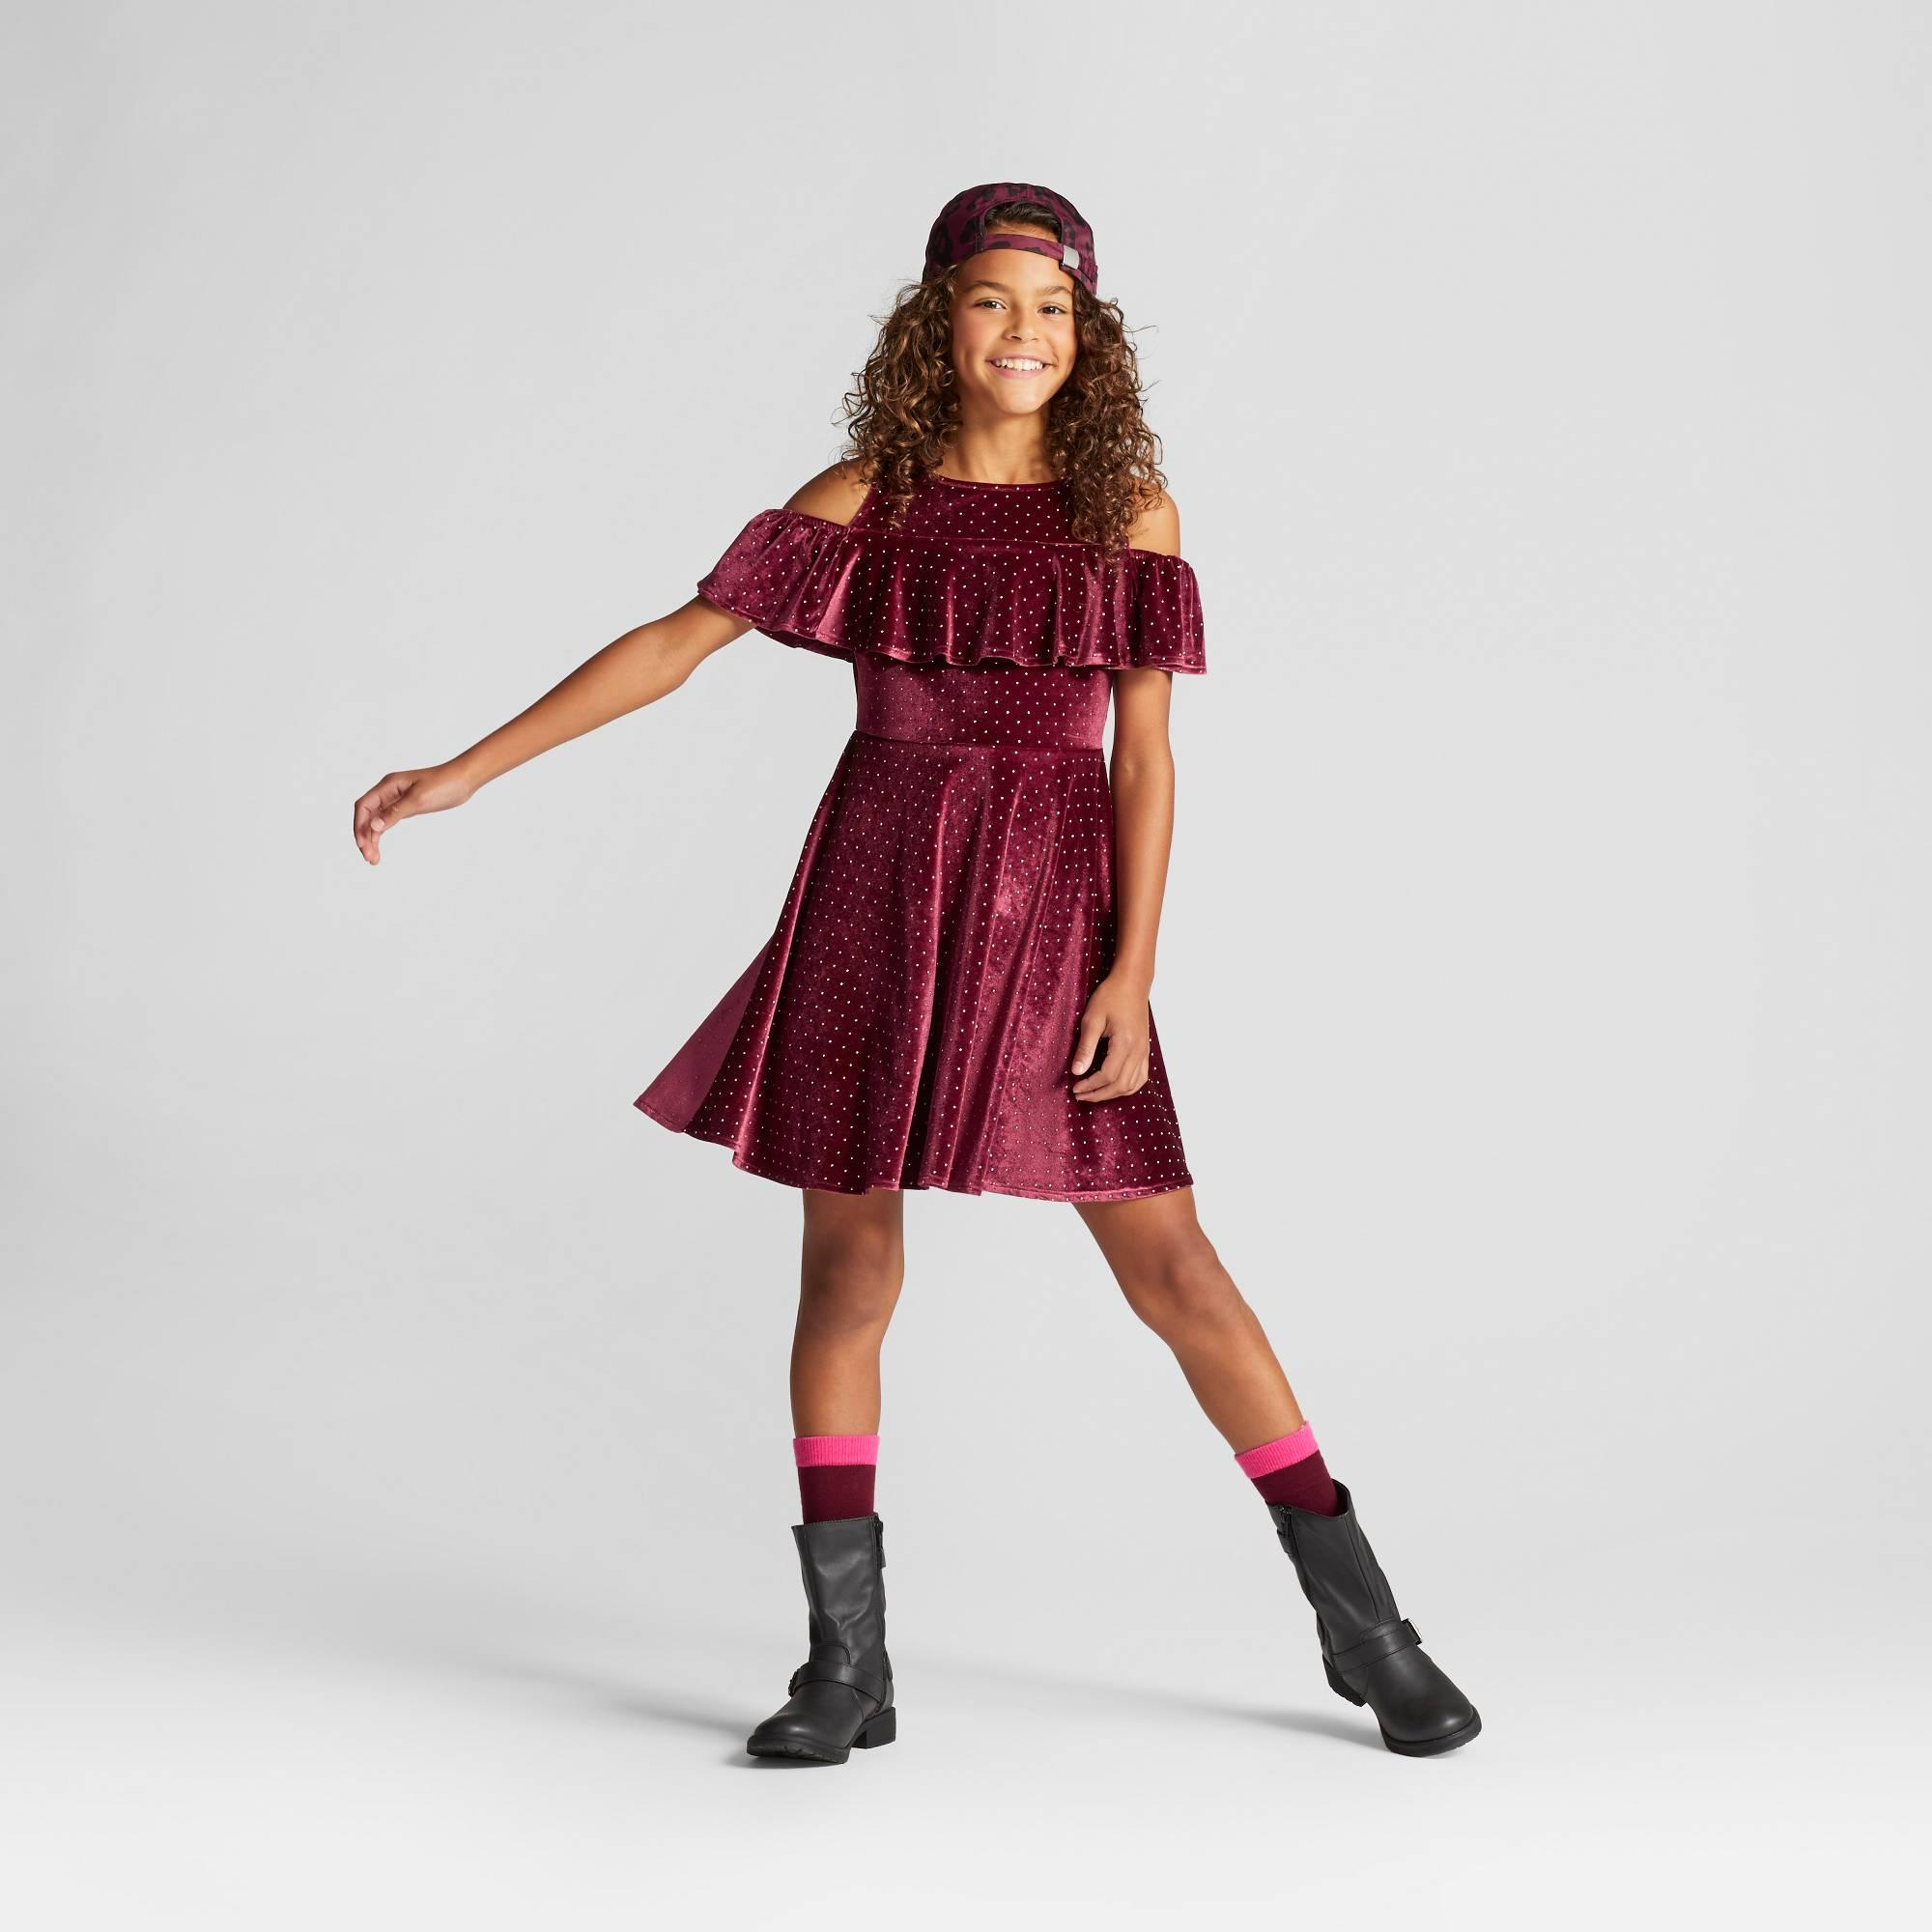 22bccf51df Trendy Teen Clothes That'll Make Perfect Gifts